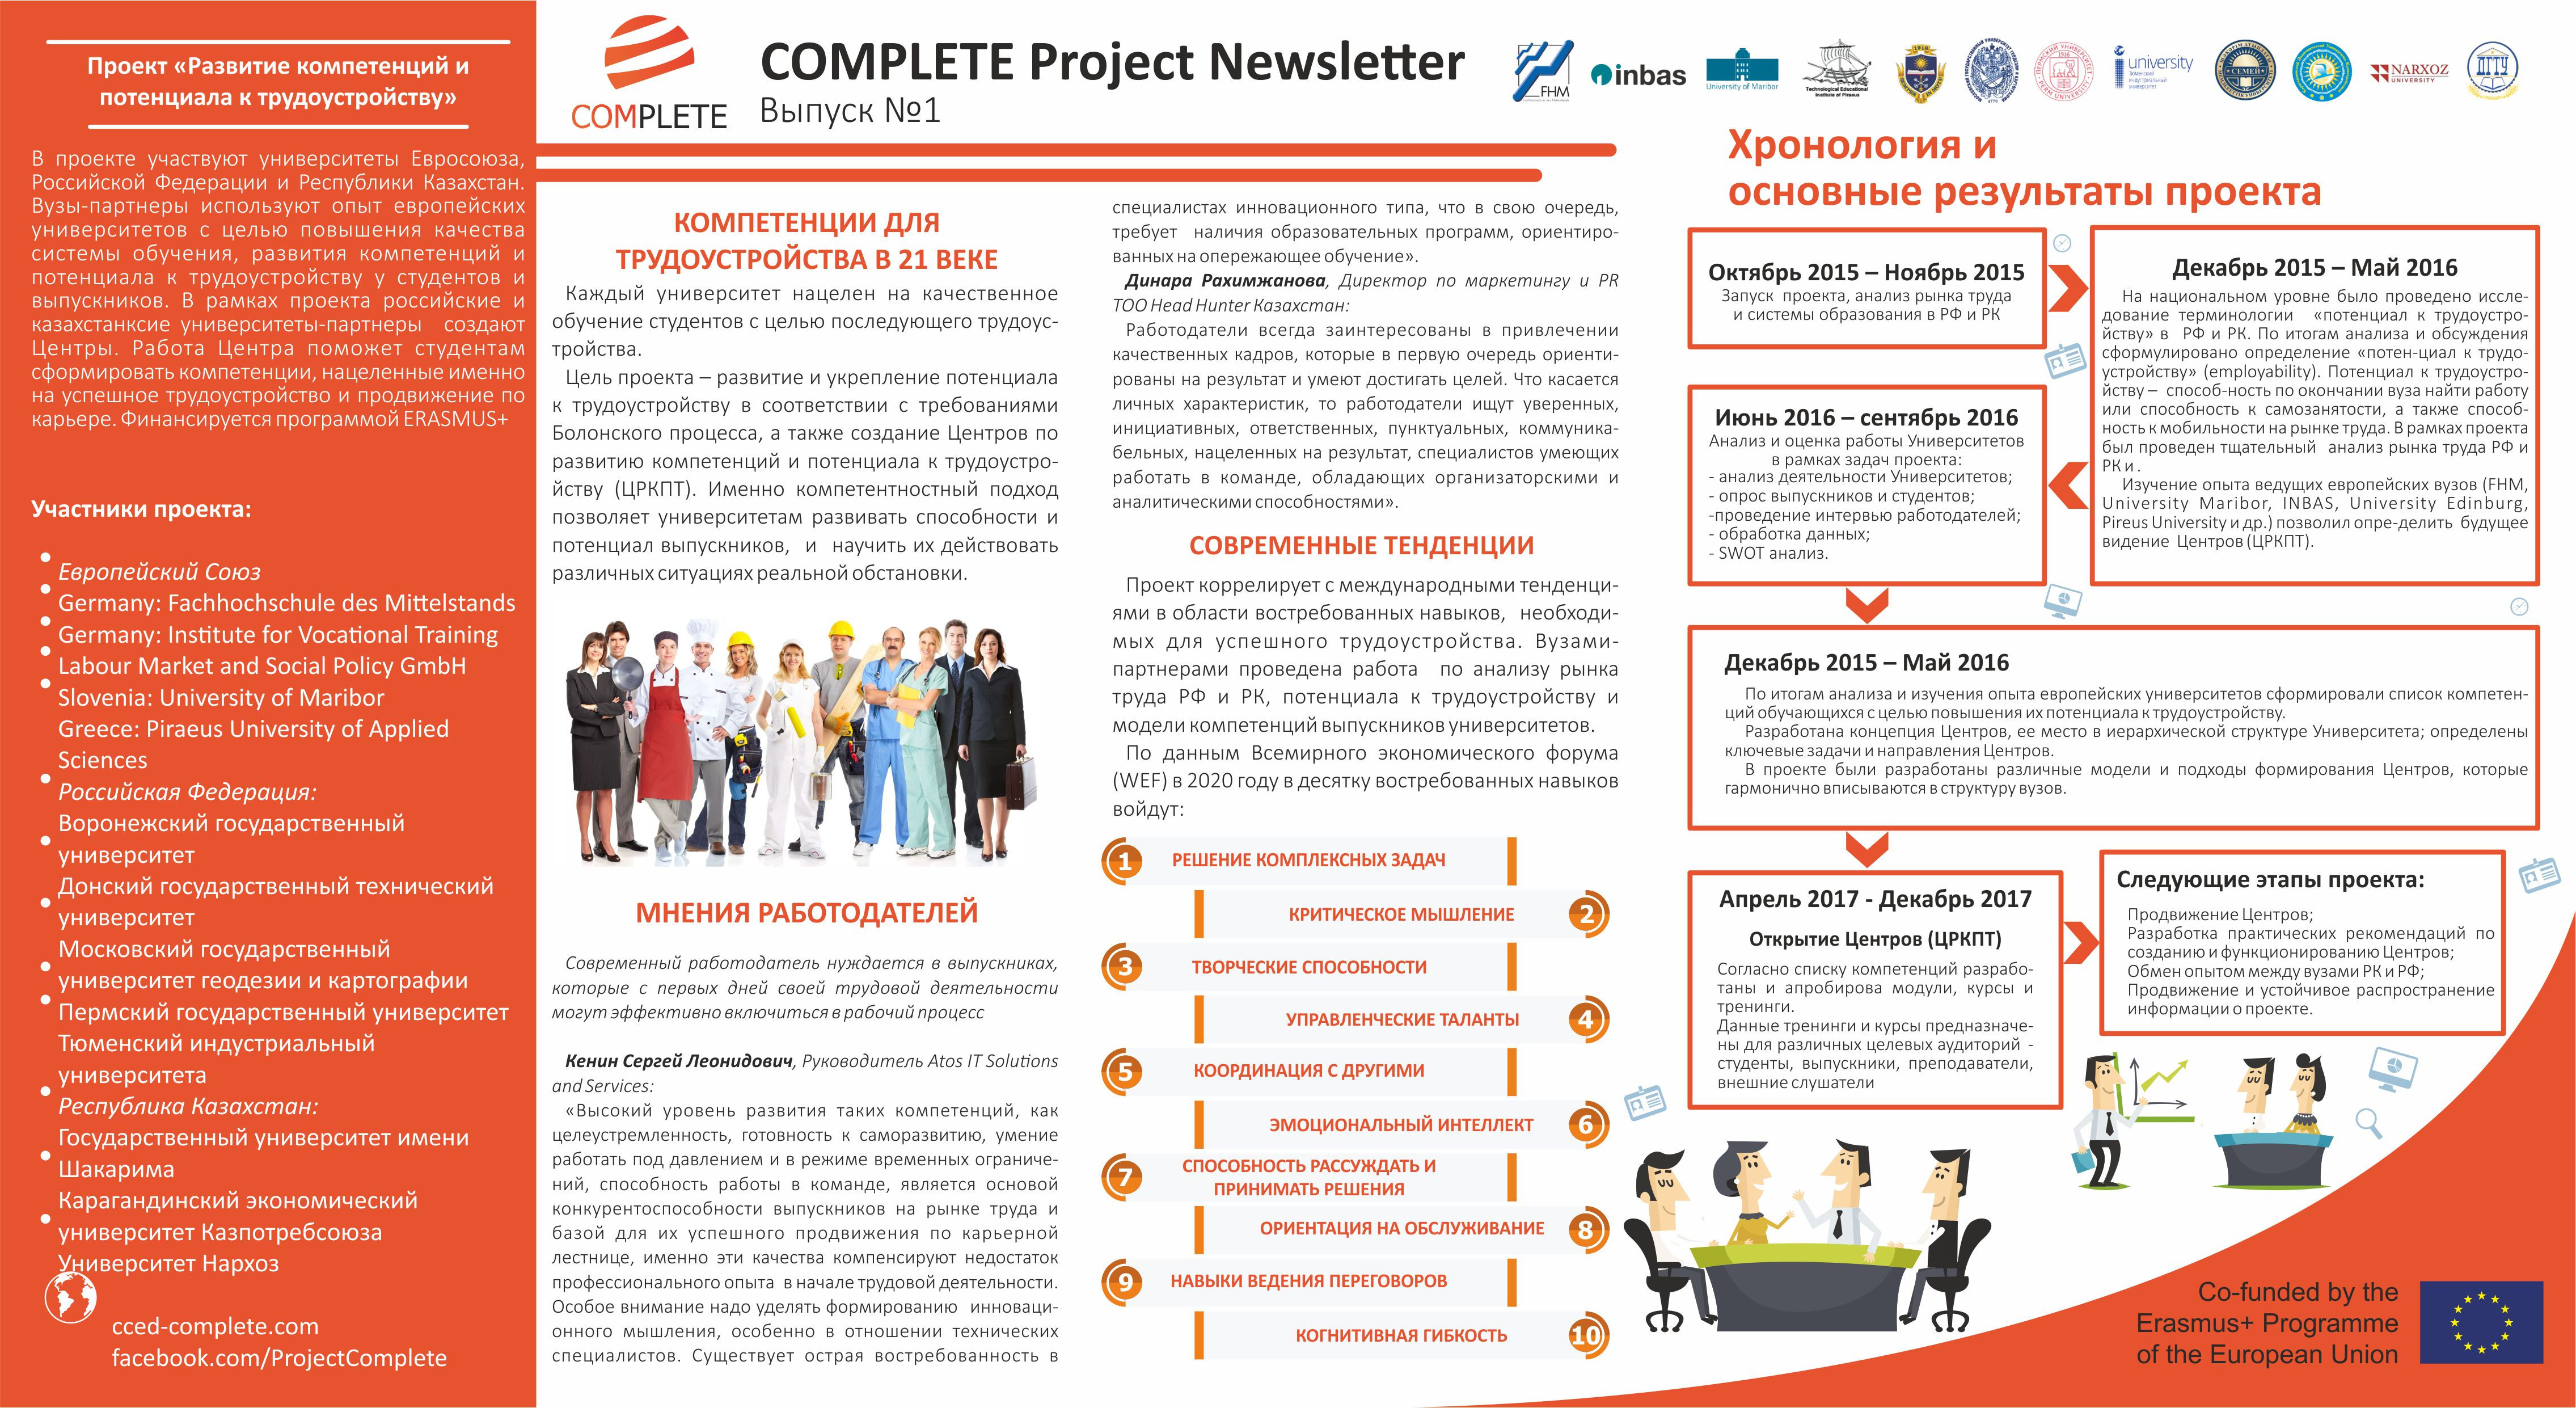 Complete - Establishment of Centres for Competence and